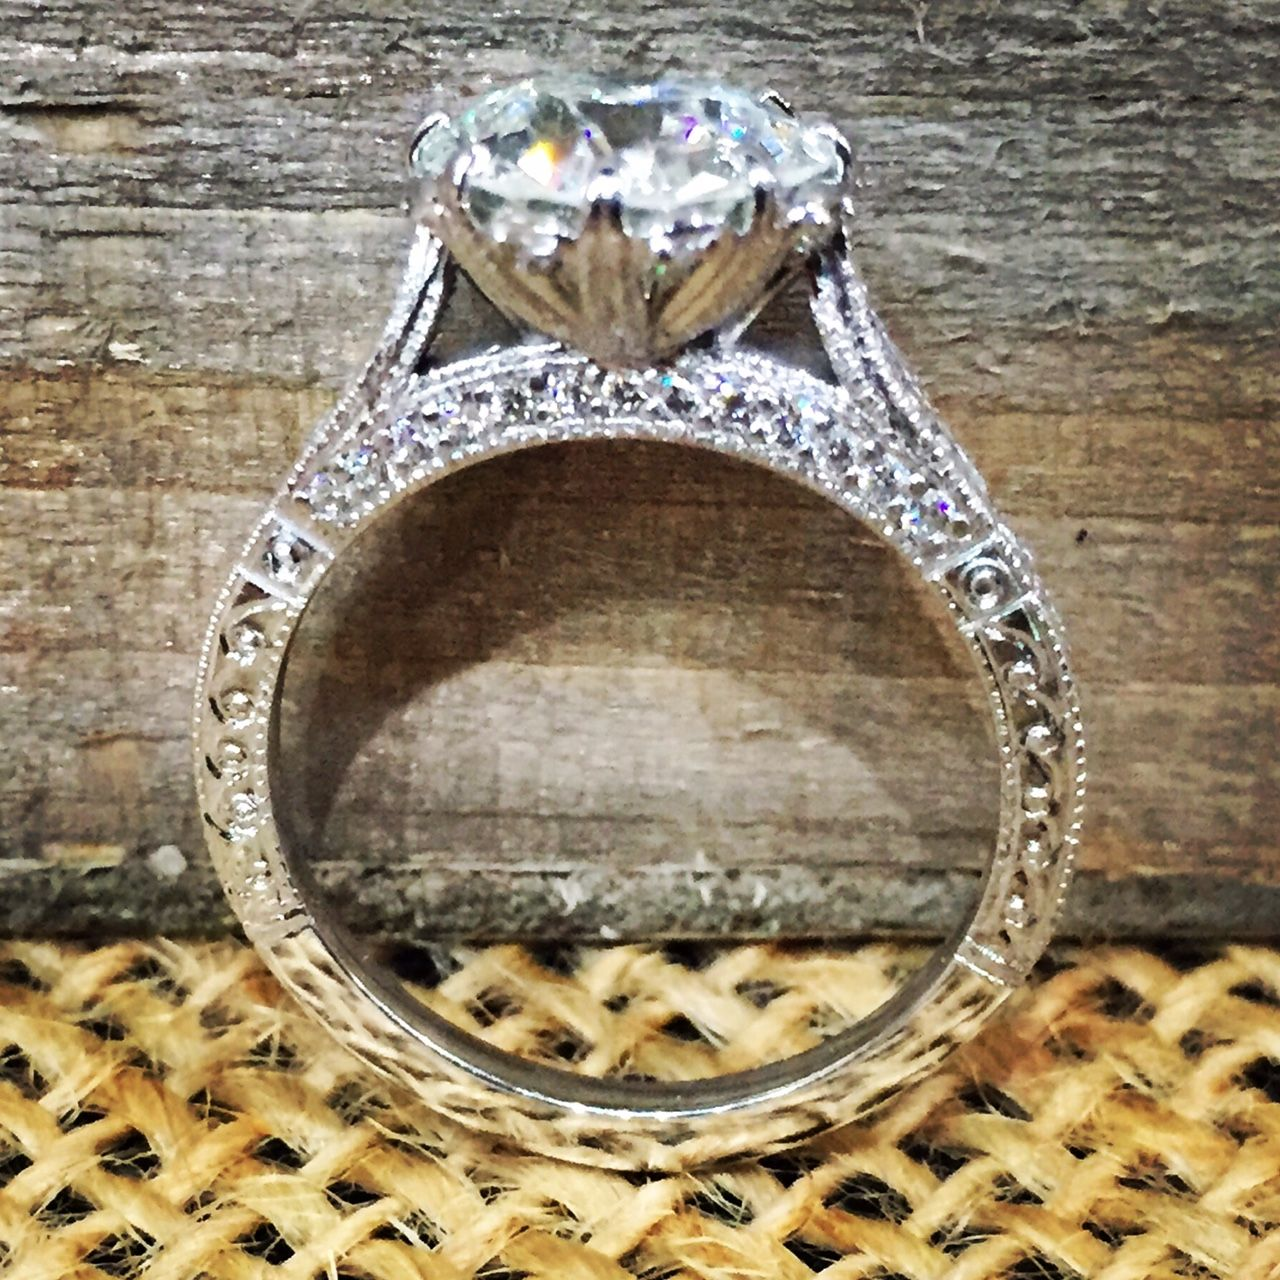 Gorgeous Old European center stone mounted in a 14K white gold ring with intricate hand engraving detail and small diamond accents!! #Follow4follow#Windycitydiamonds#isayyes#14kwhitegold#showmeyourrings#chicago#diamonds#jewelry#shesaidyes#follow4follow#isayyes#futurewife#happiness#perfectring#jewelry